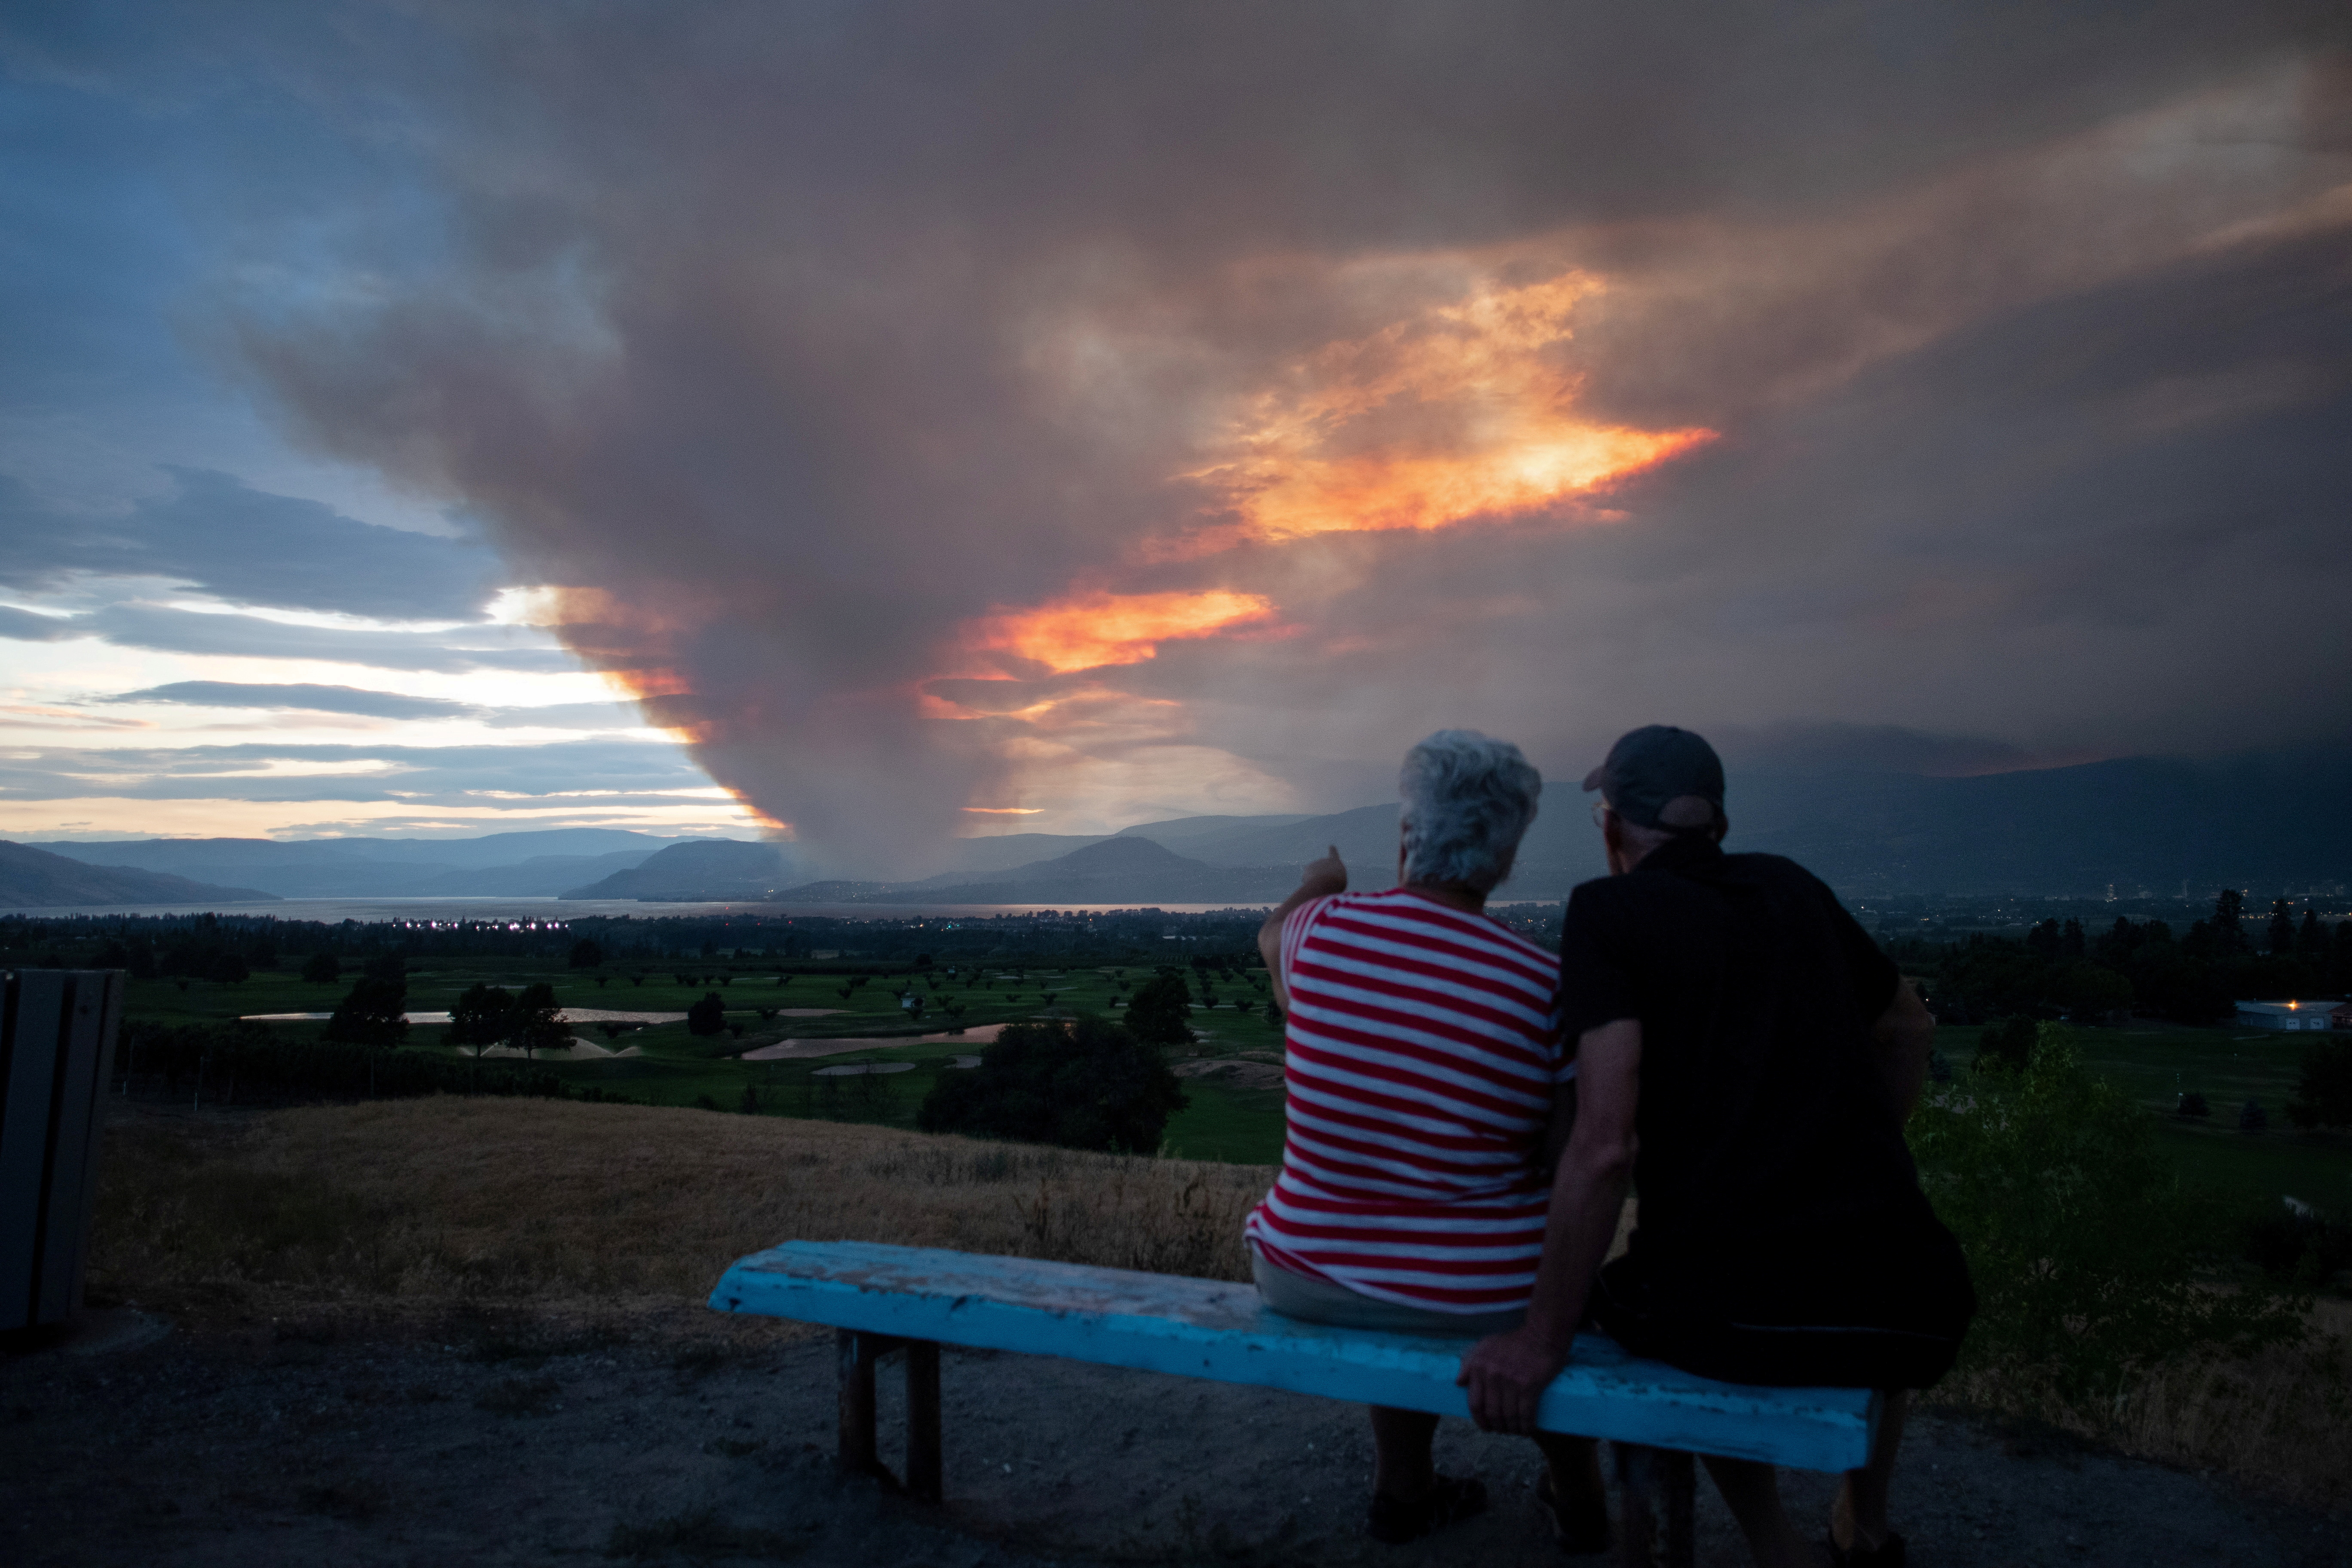 A couple view the newly ignited Mount Law wildfire, near Peachland and Glenrosa on the west side of Okanagan Lake, from the waterfront in Kelowna, British Columbia, Canada August 15, 2021. REUTERS/Artur Gajda